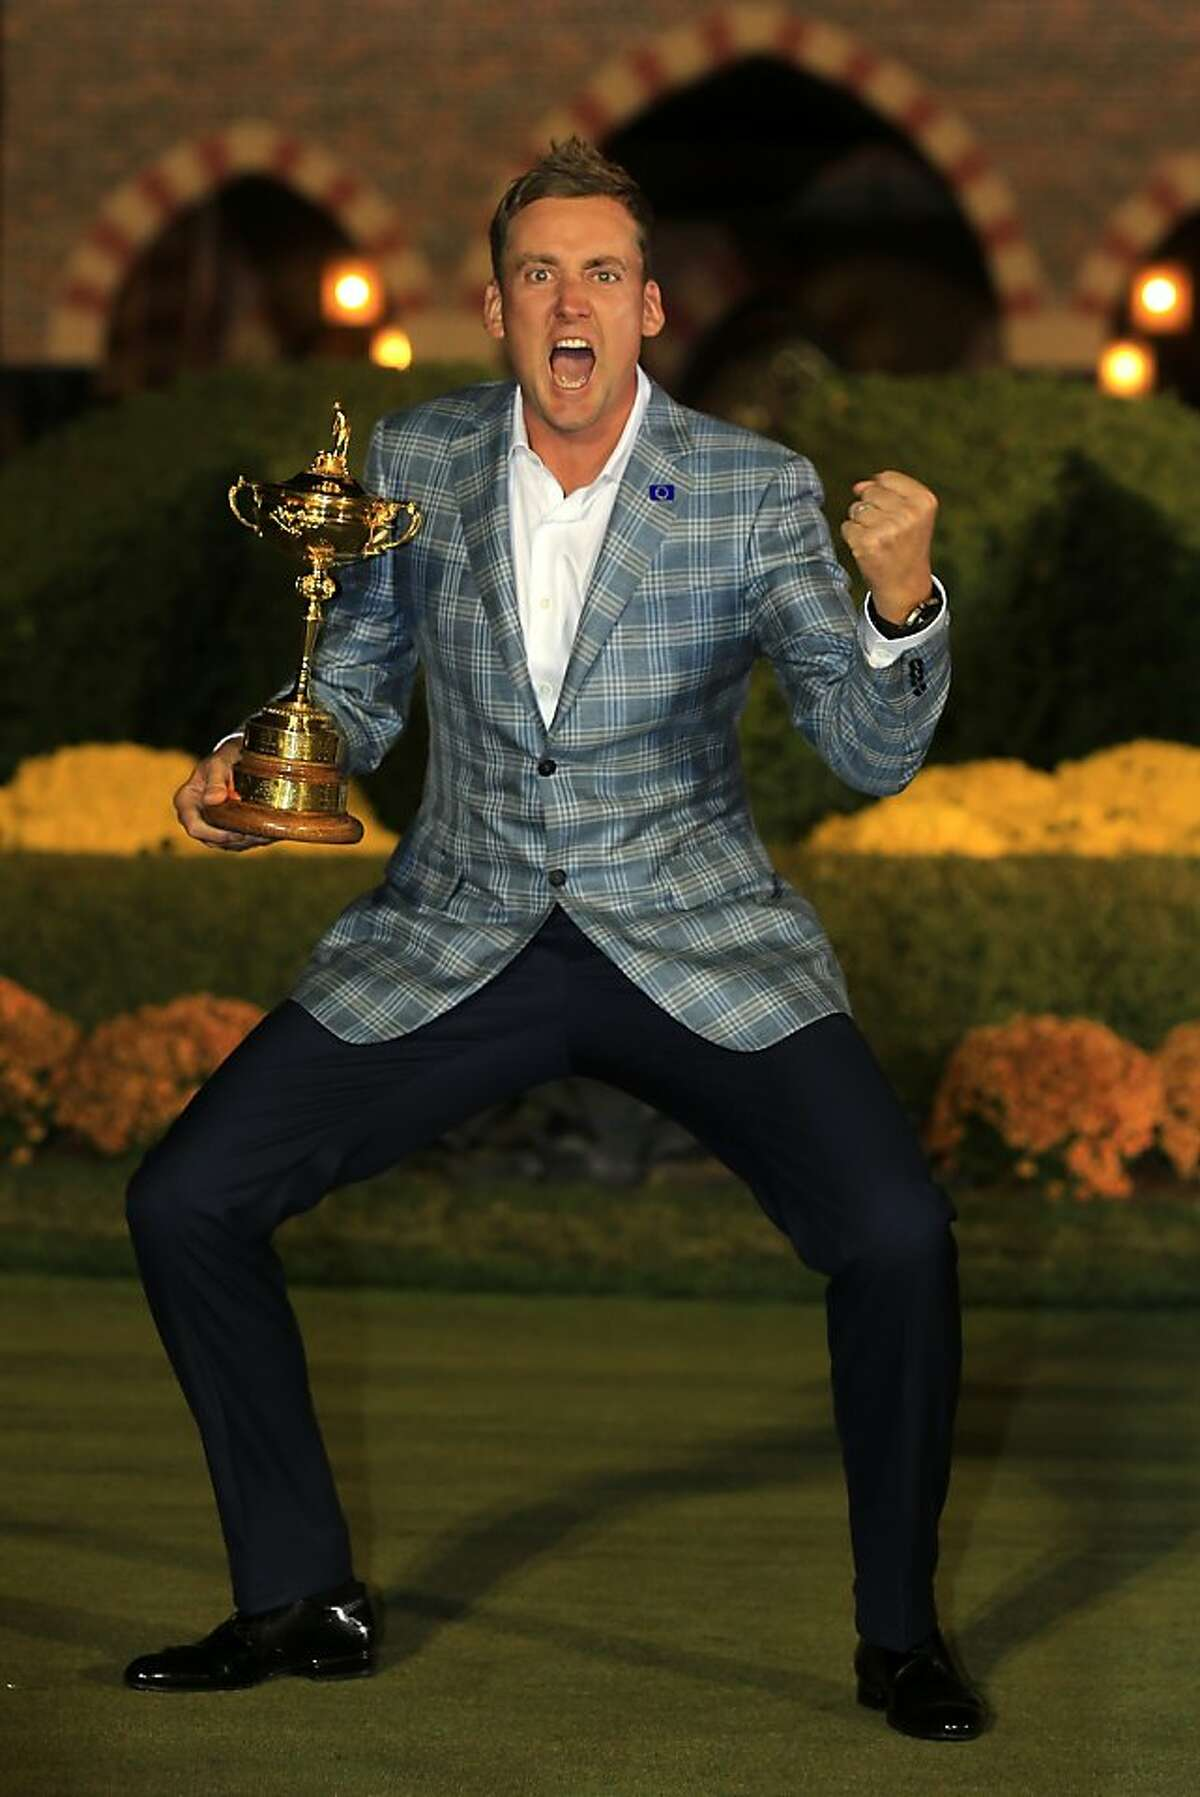 MEDINAH, IL - SEPTEMBER 30: Ian Poulter of Europe poses with the Ryder Cup after Europe defeated the USA 14.5 to 13.5 to retain the Ryder Cup during the Singles Matches for The 39th Ryder Cup at Medinah Country Club on September 30, 2012 in Medinah, Illinois. (Photo by David Cannon/Getty Images)